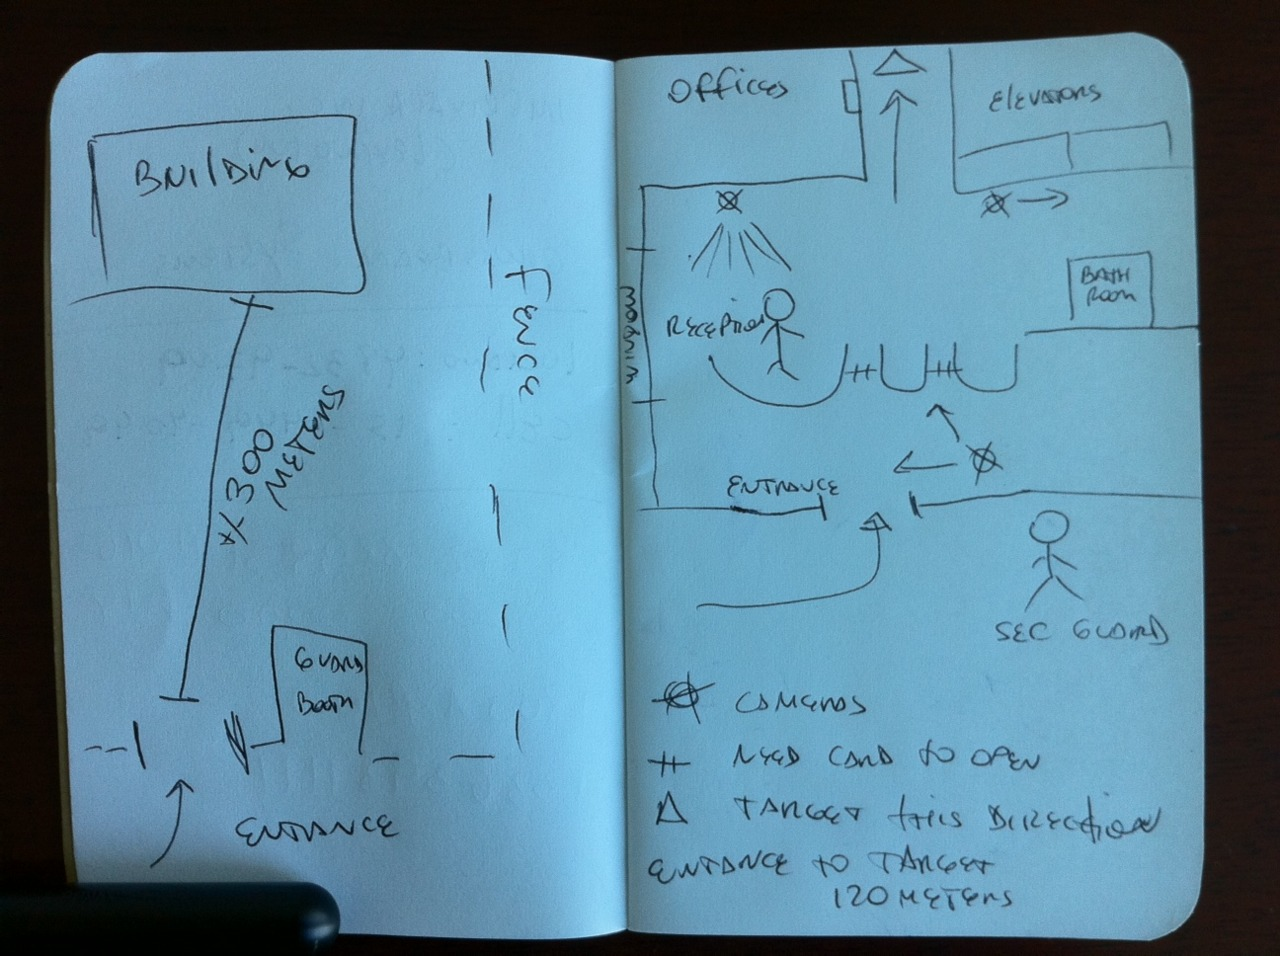 Site casing with a Field Notes